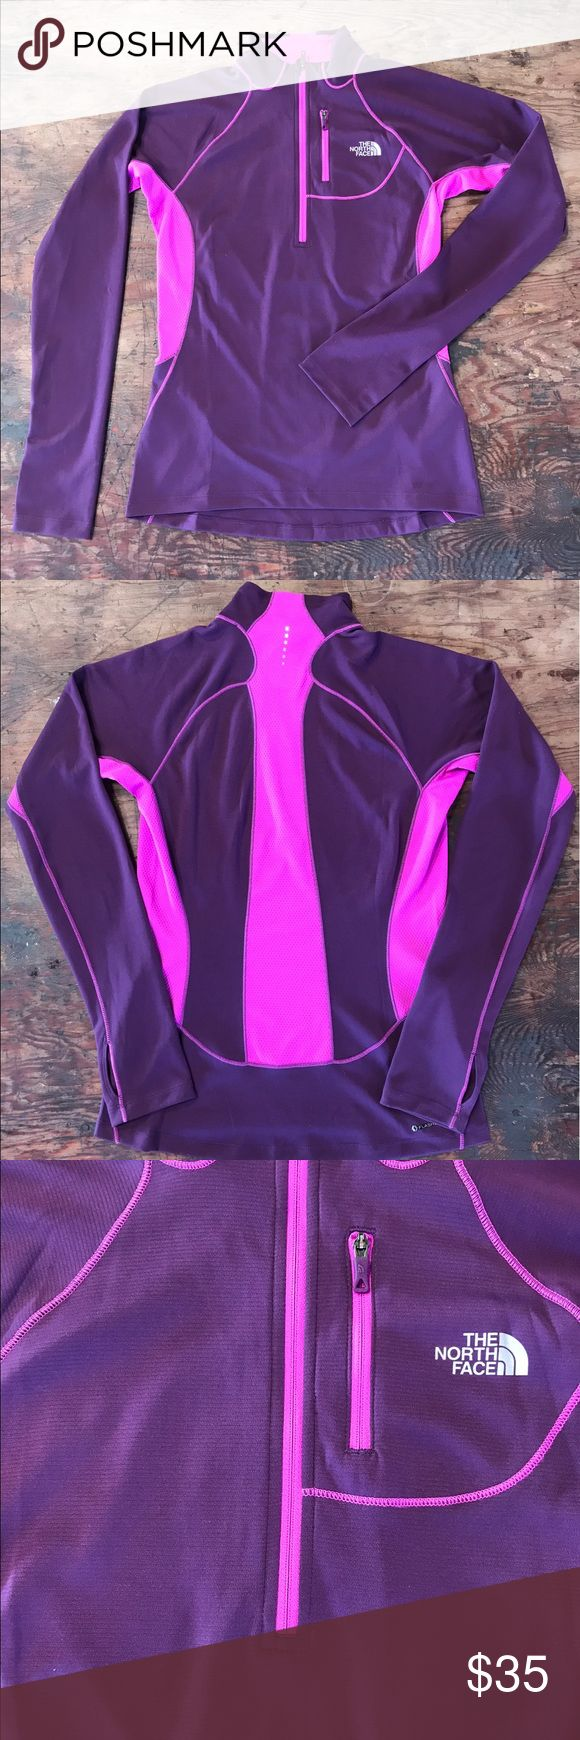 The North Face long sleeve pullover Pink and Purple pullover.  Women Size Small. Front pocket. The North Face Tops Sweatshirts & Hoodies